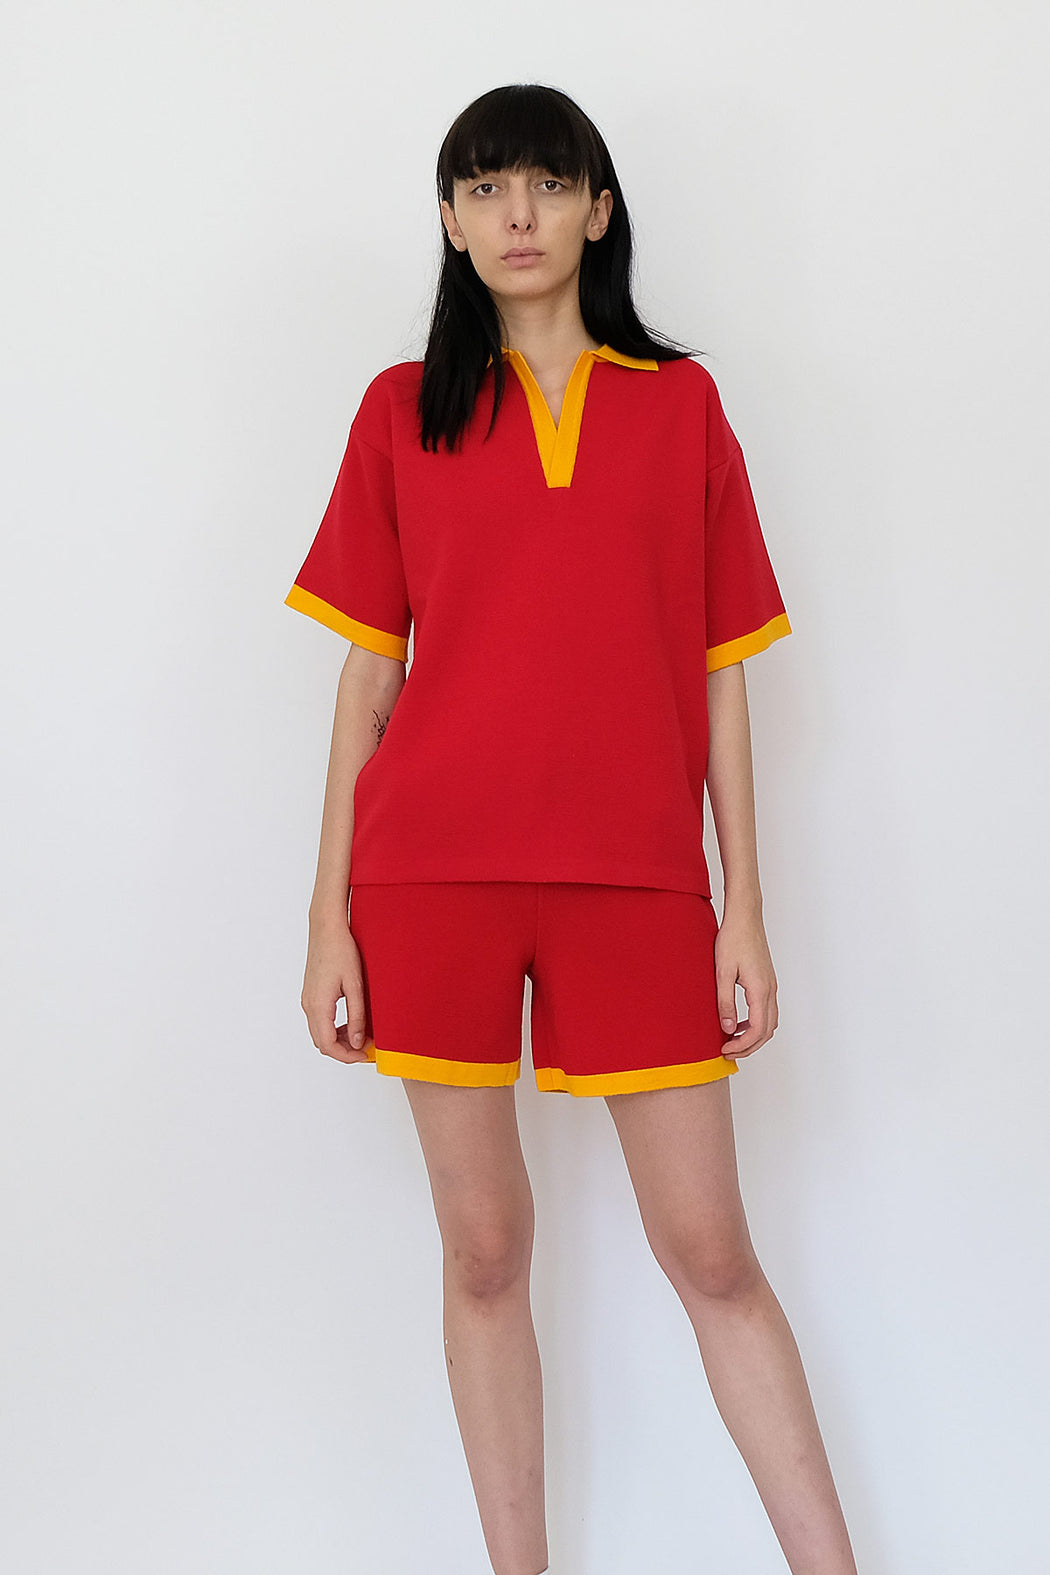 LF Knitted Wool Tshirt in Scarlet Red